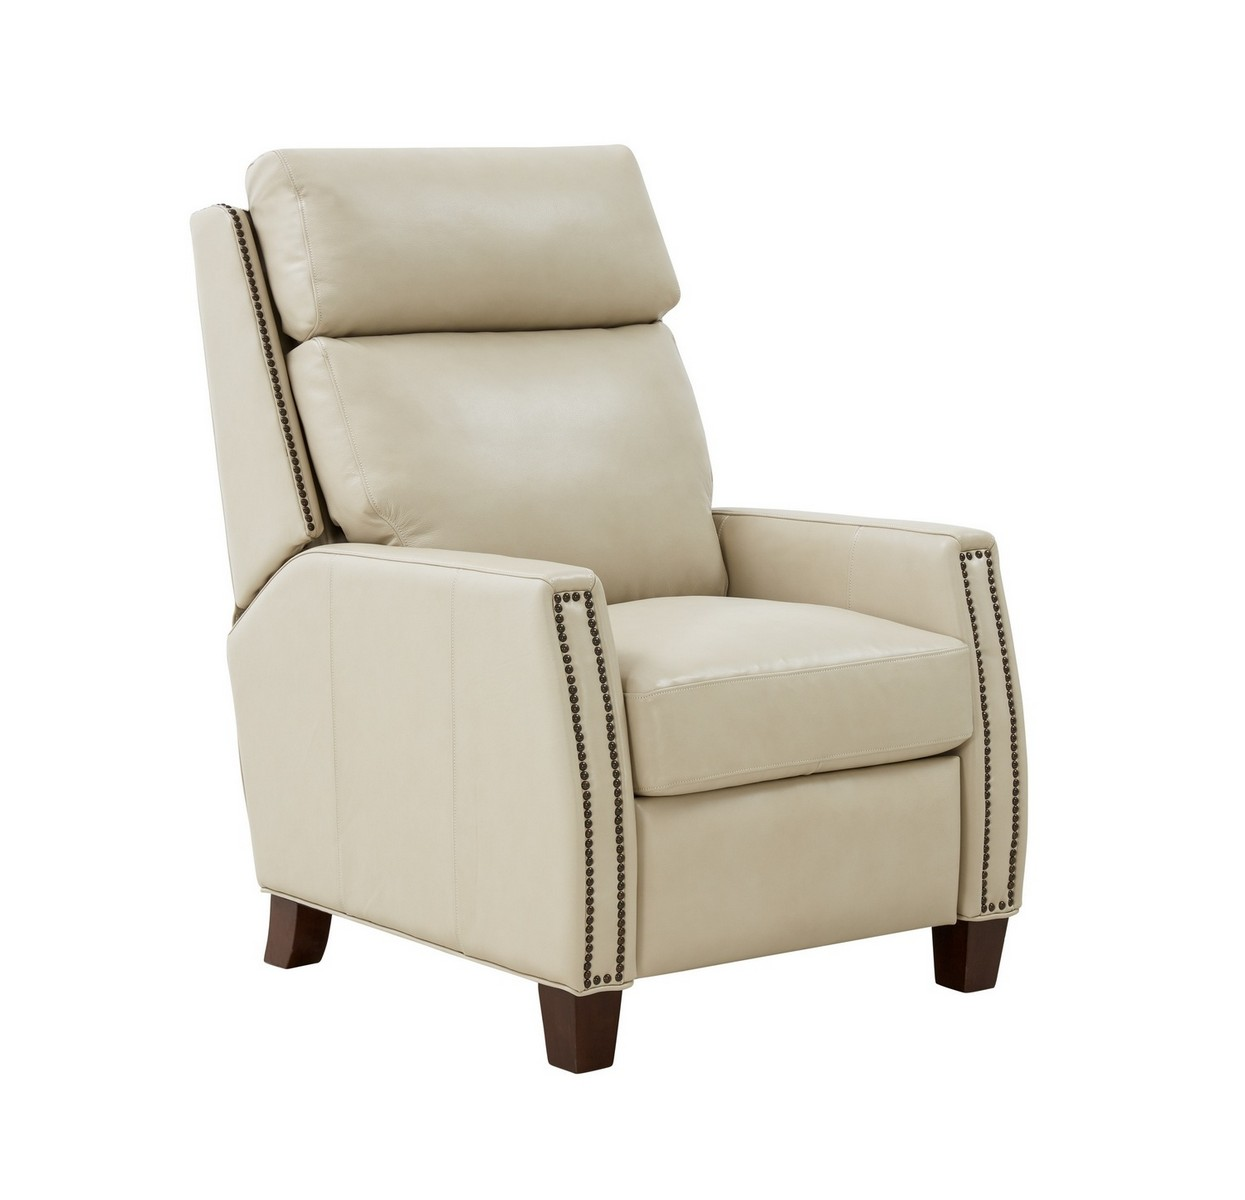 Barcalounger Anaheim Big and Tall Recliner Chair - Barone Parchment/All Leather